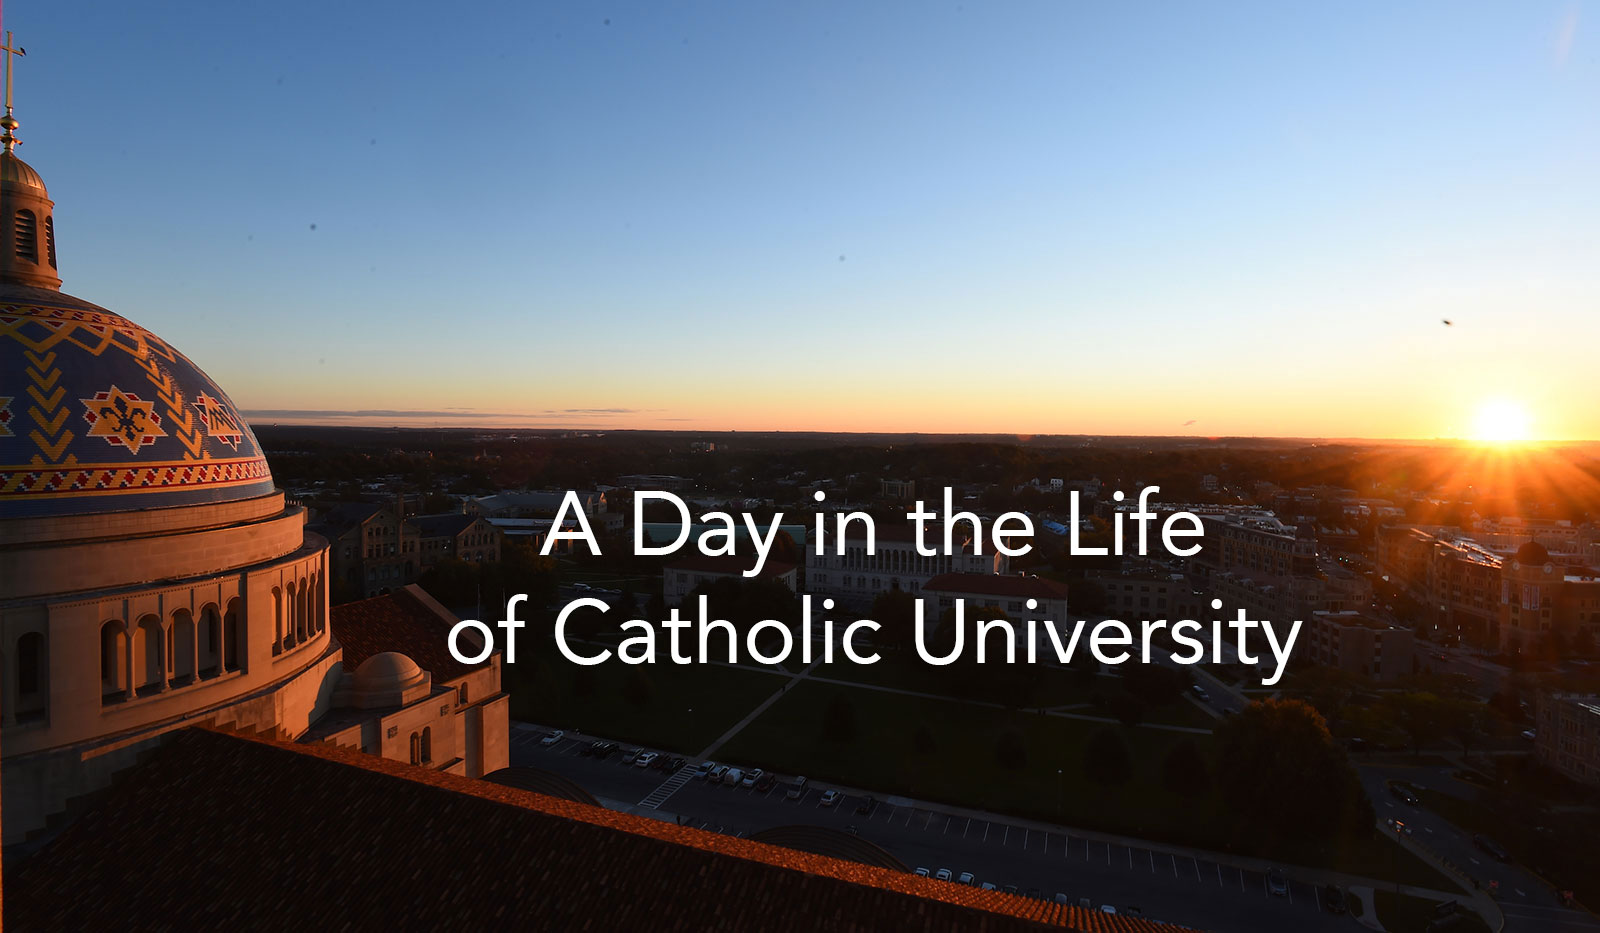 View of sunrise over campus from rooftop vantage point. A Day in the Life of Catholic University title.